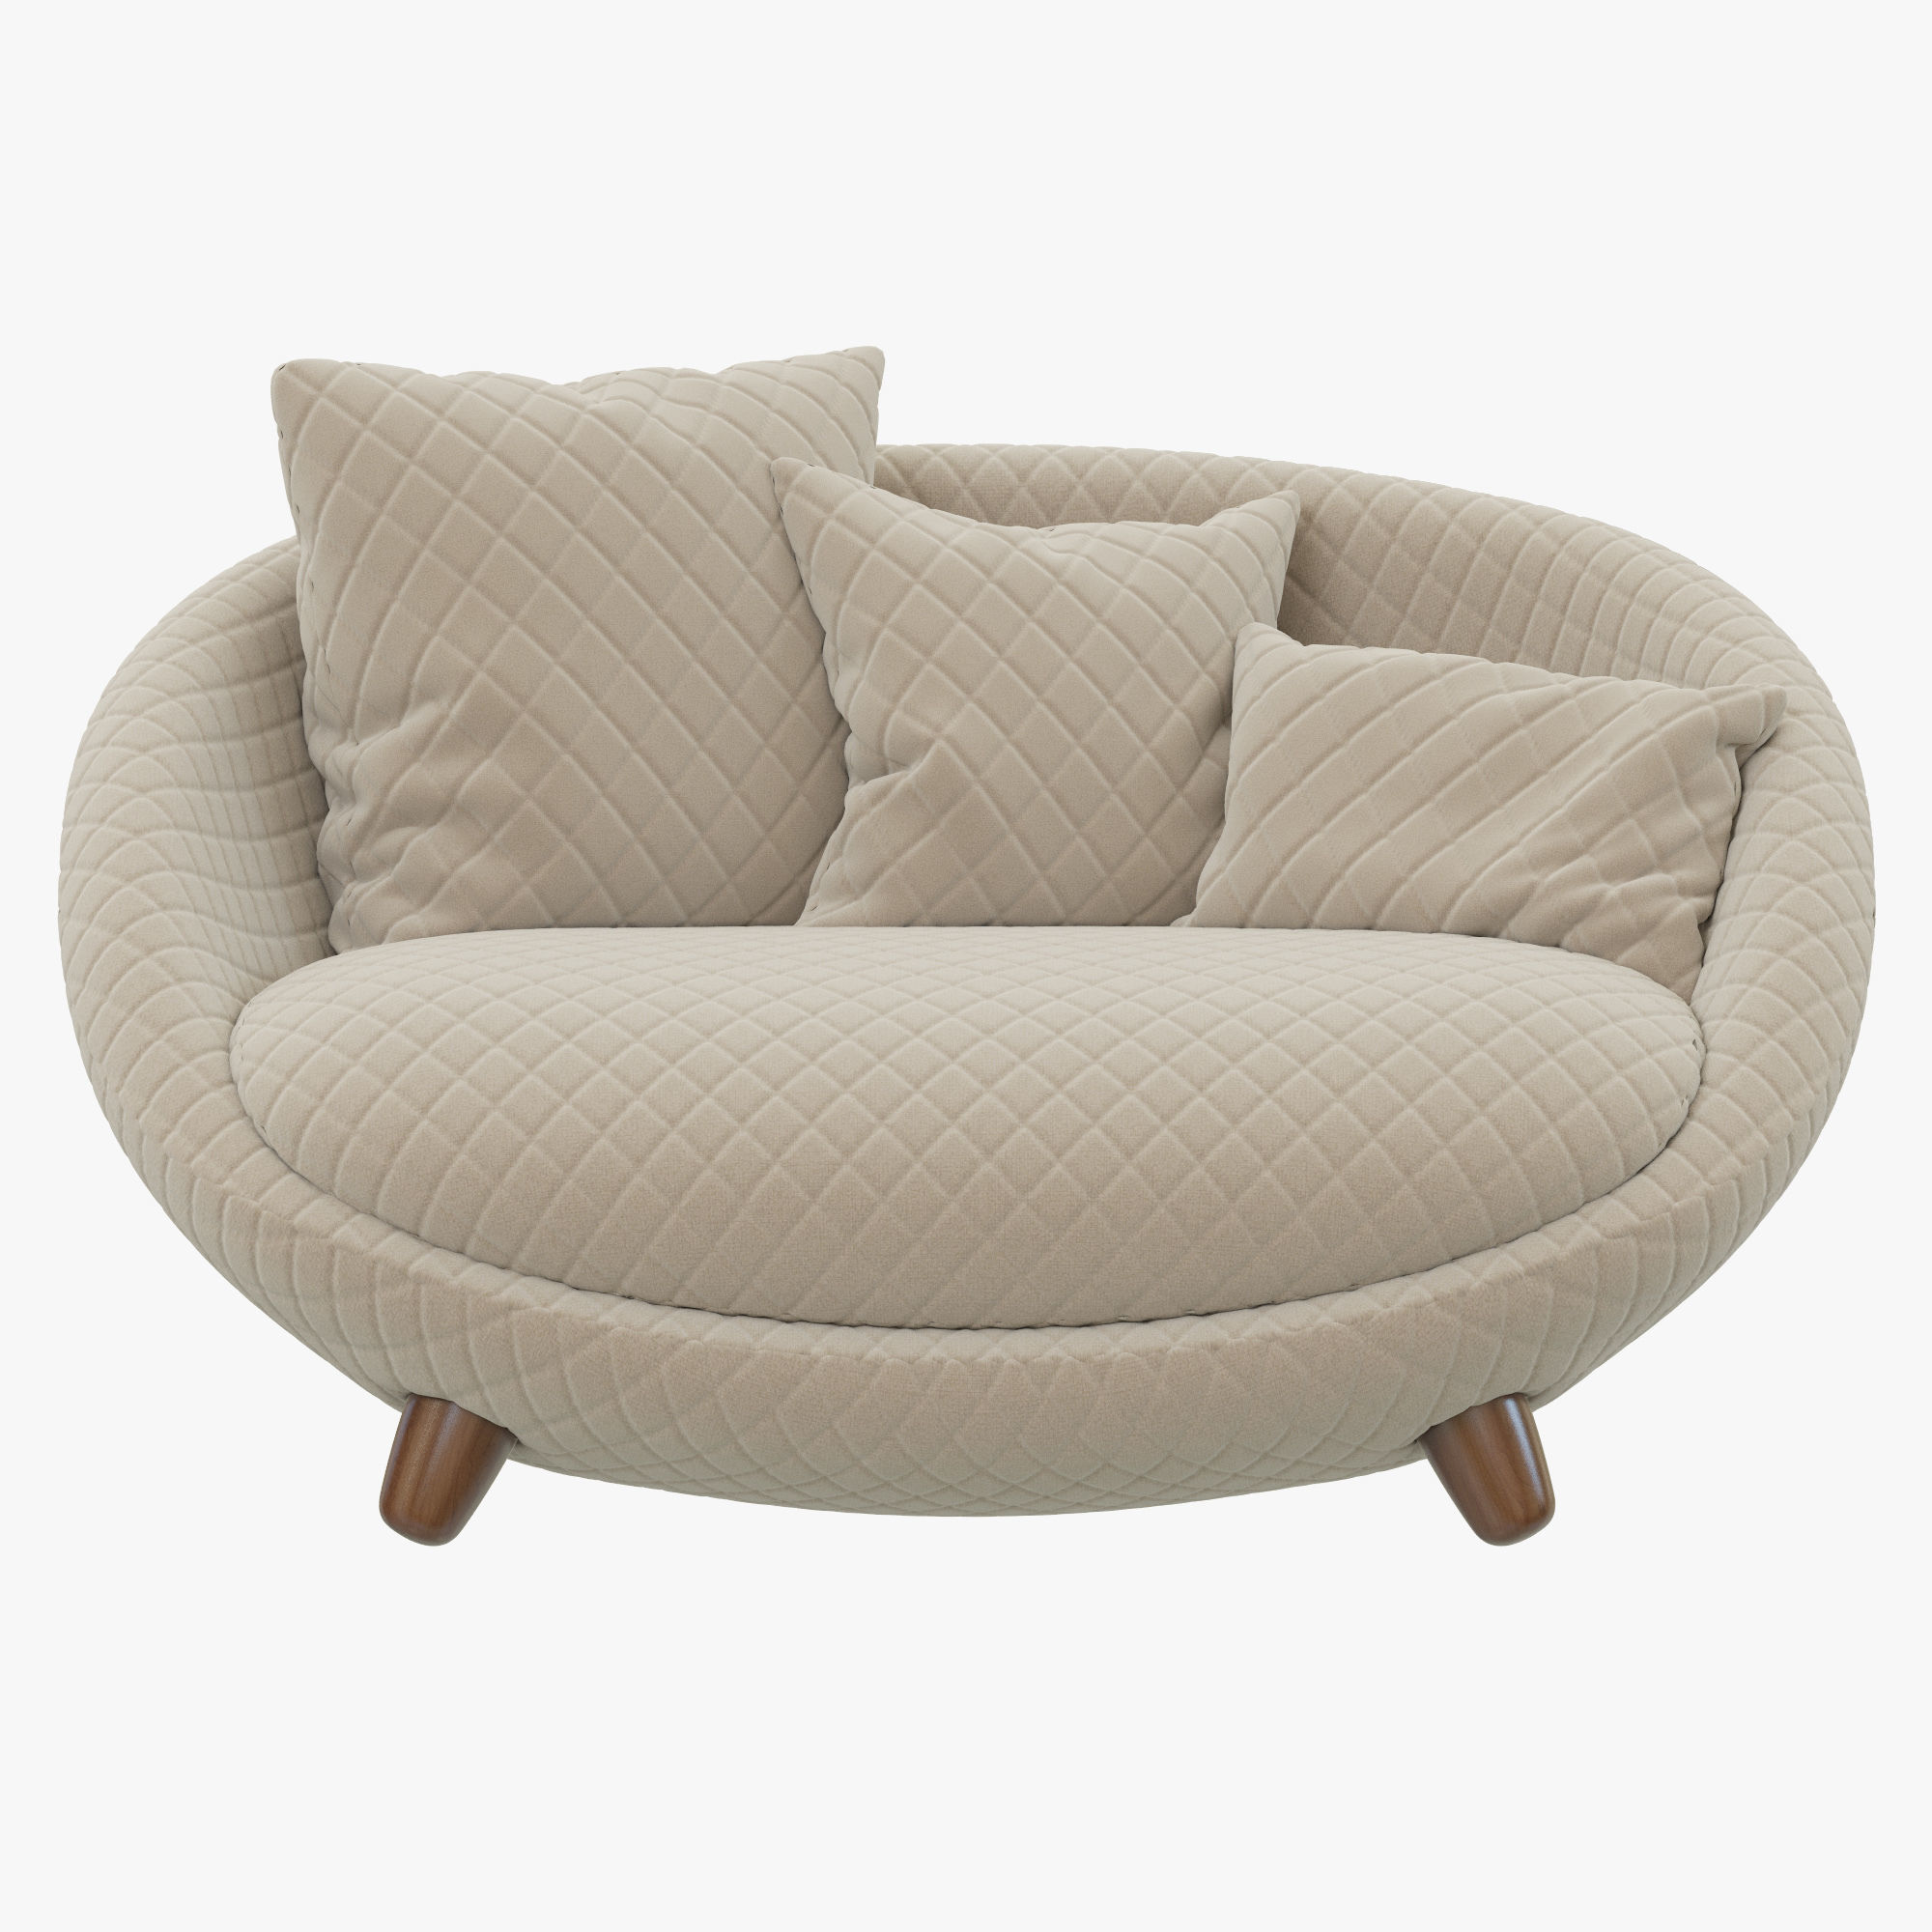 the love chair hanging stand nz sofa gorgeous oval round couch dfs snuggle cuddle